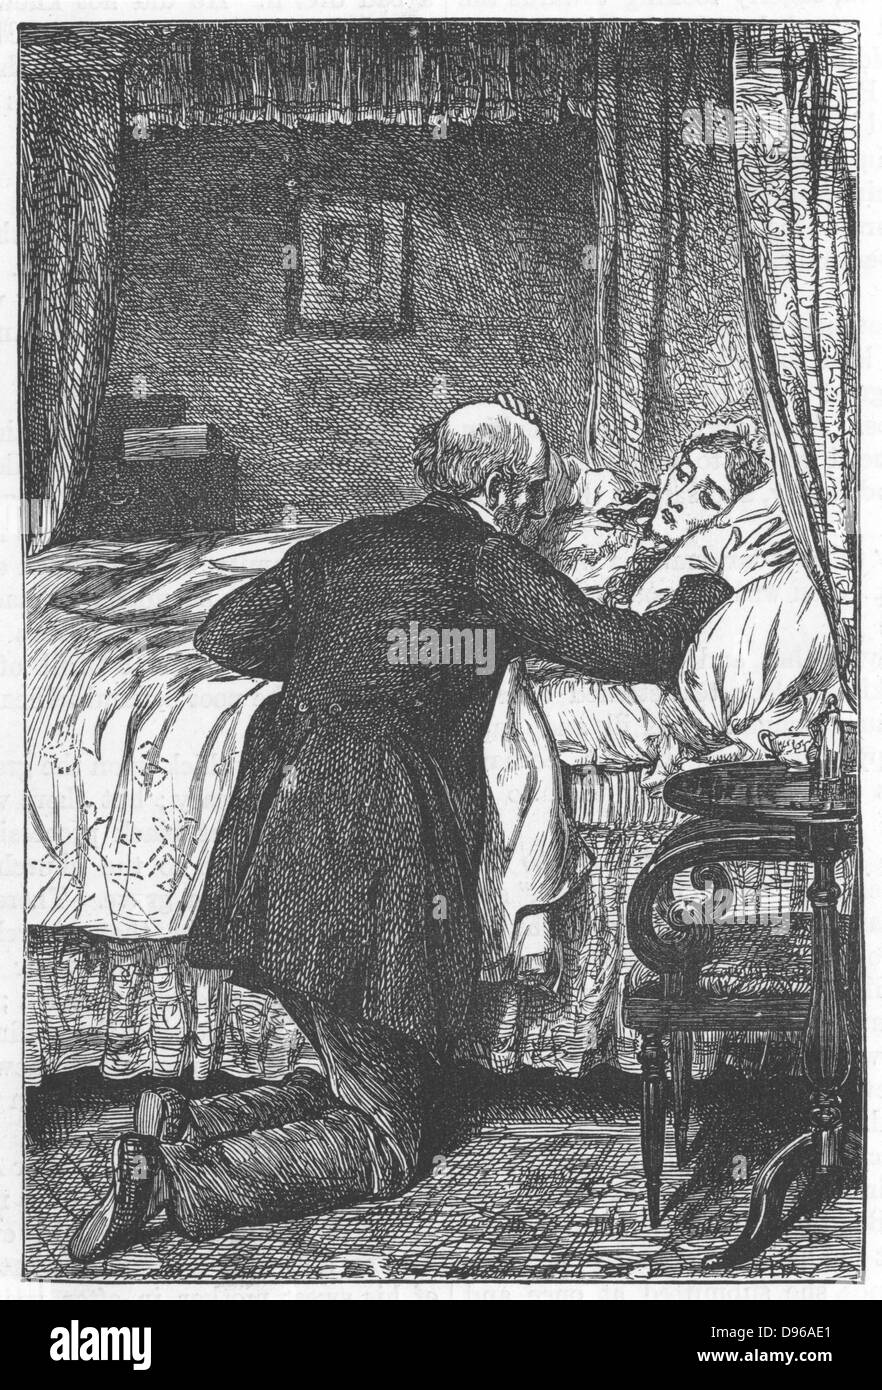 Amos Barton at his wife's deathbed. Illustration by Robert Barnes for George Eliot 'Scenes of Clerical Life', - Stock Image